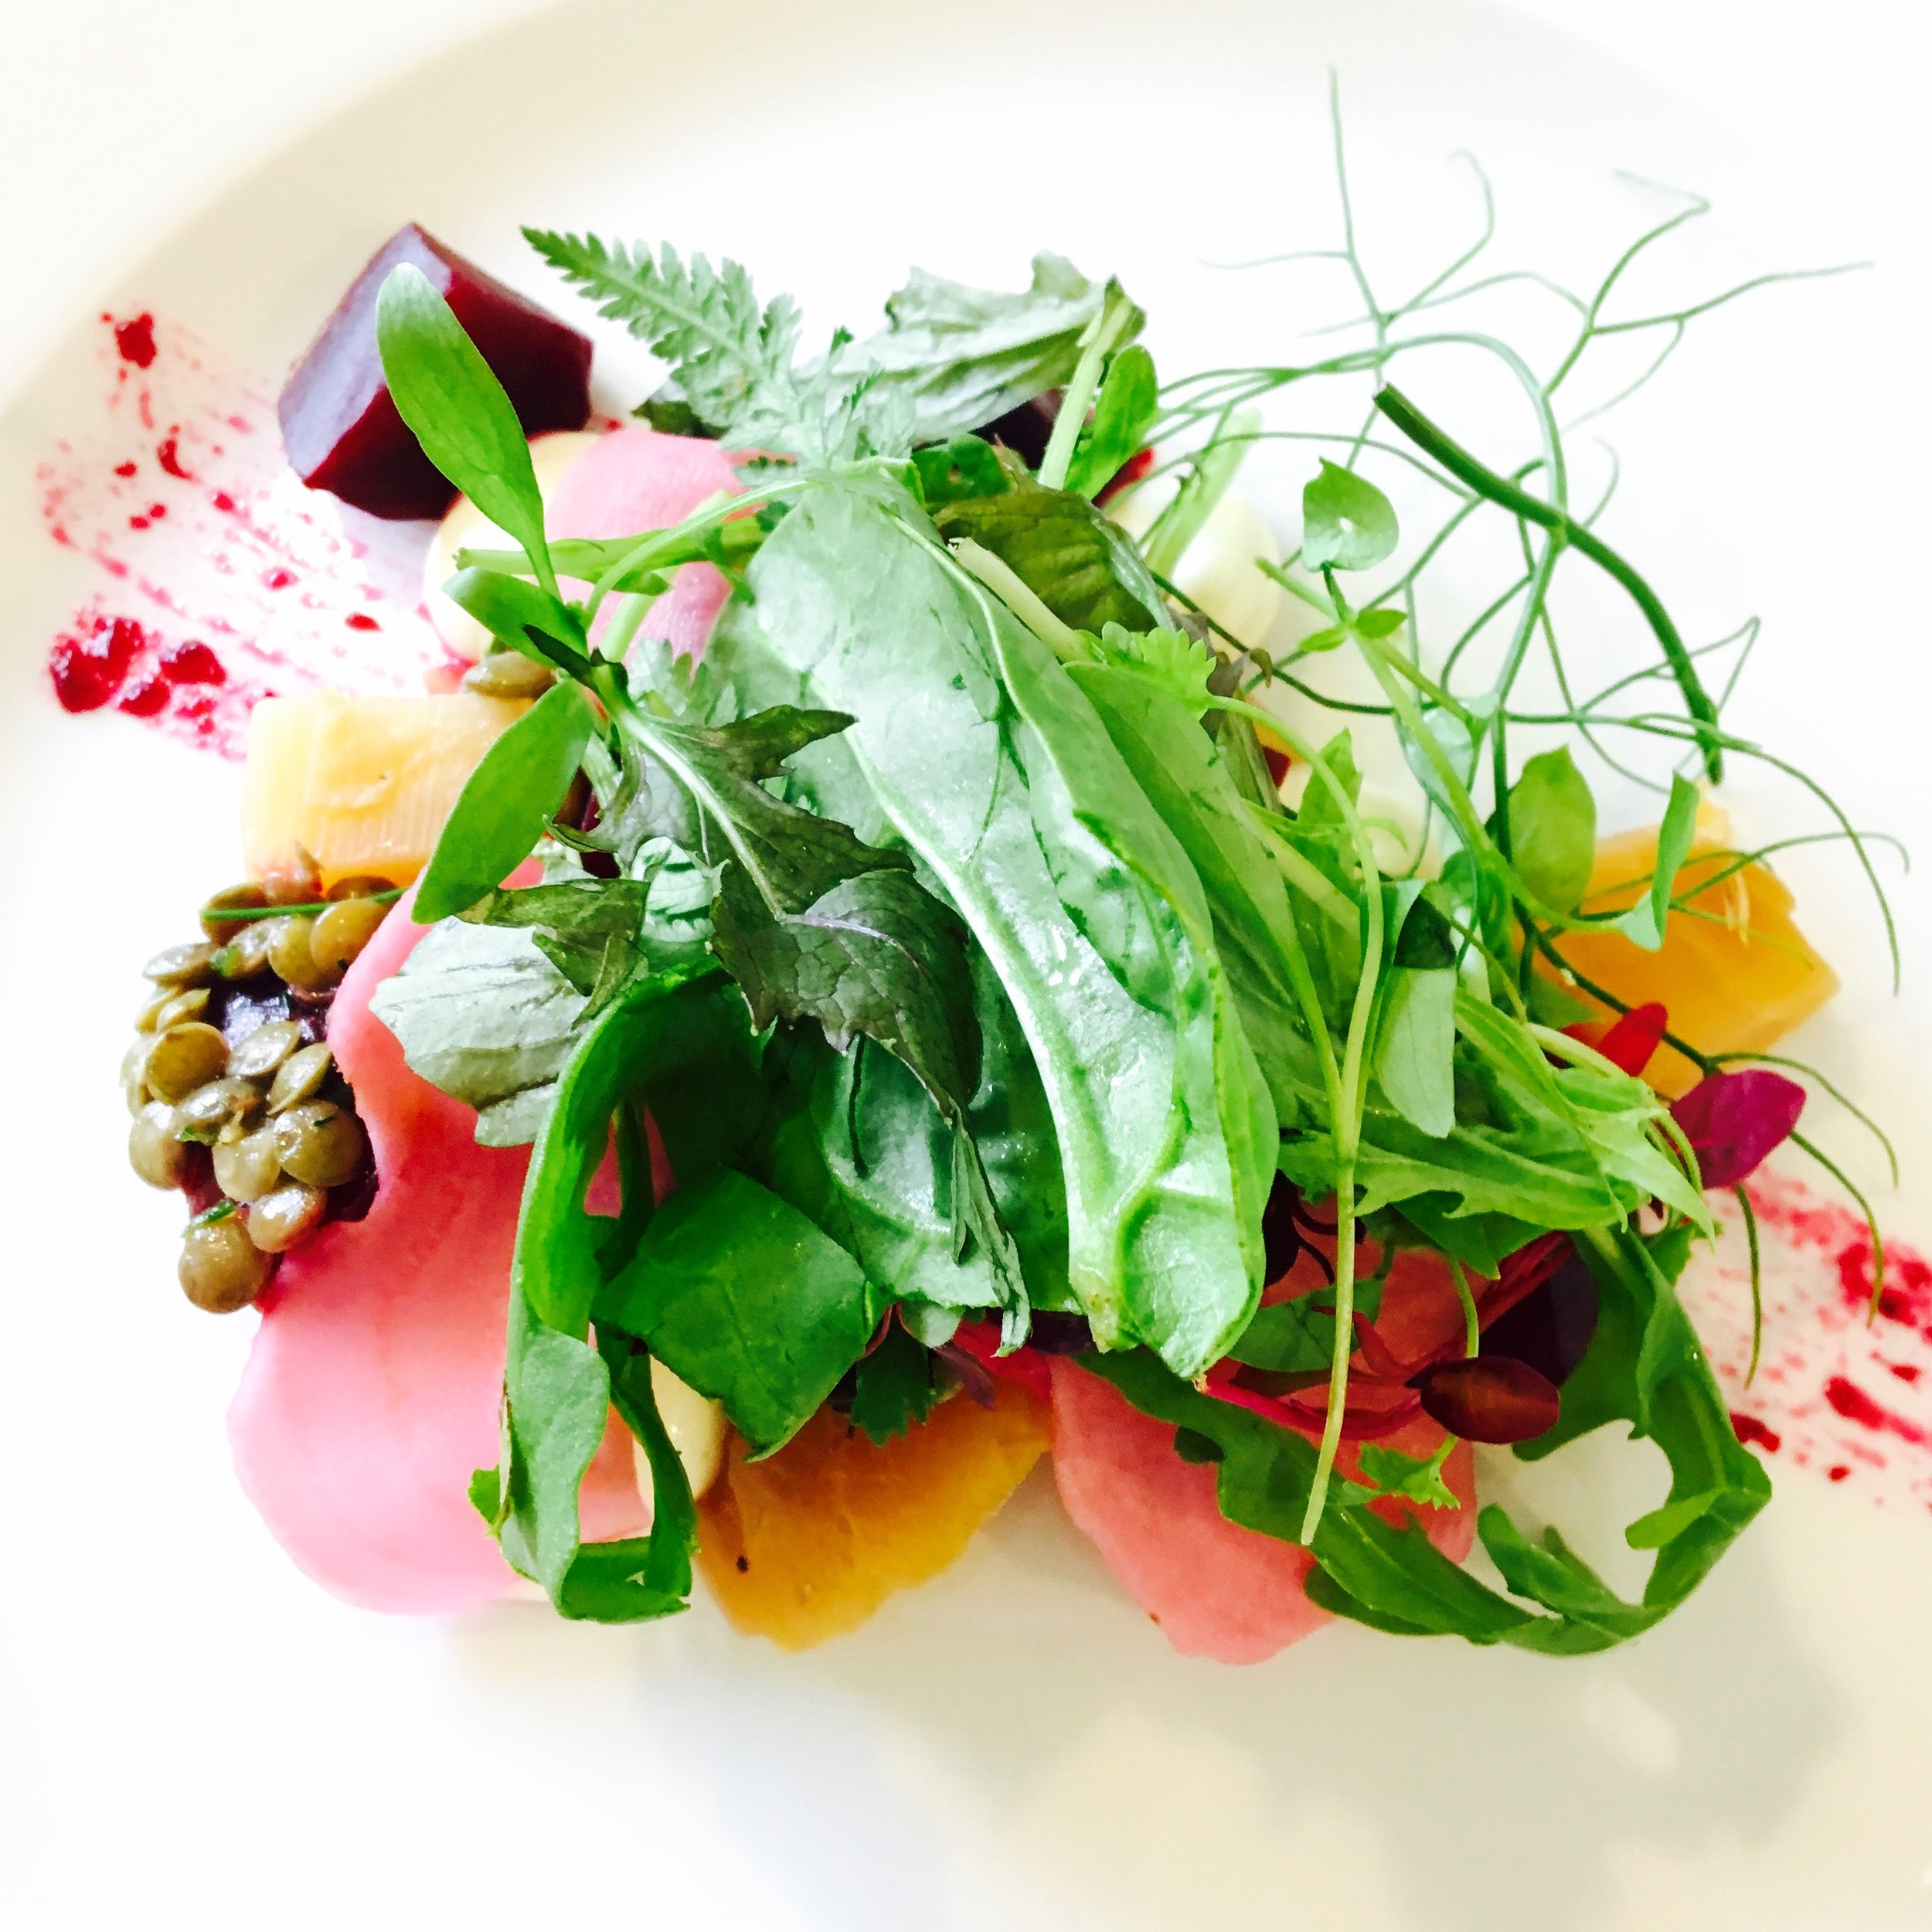 Roasted and pickled beetroot, ricotta salata, puy lentils and foraged leaves for a wedding starter.